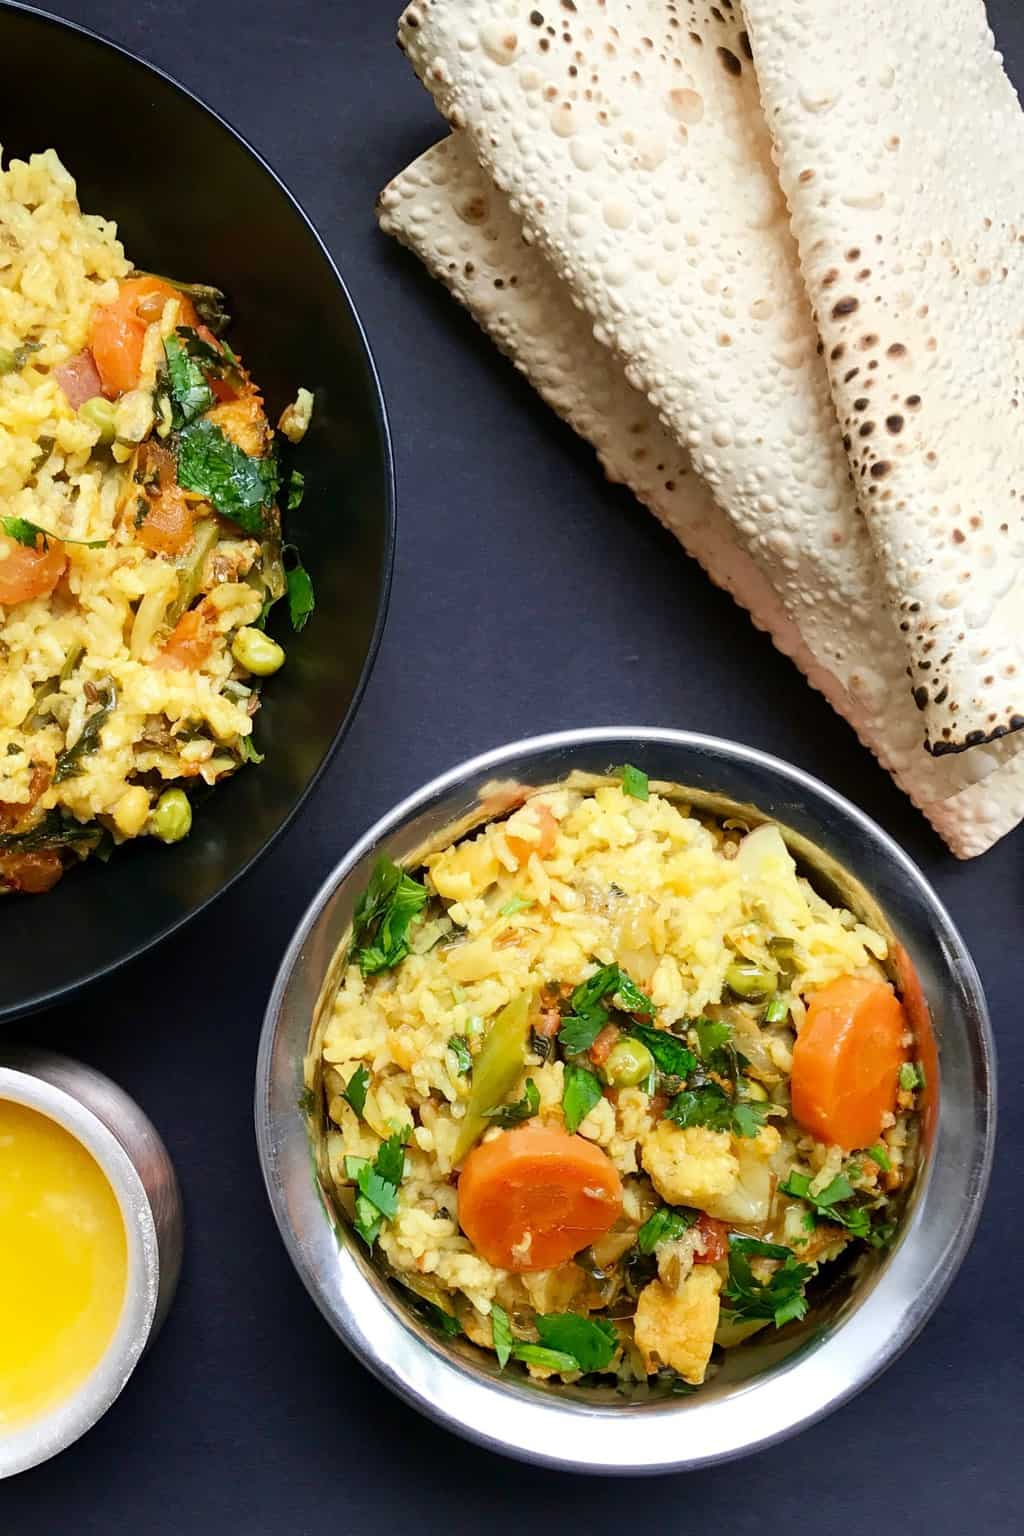 Mixed lentils khichdi served with papad